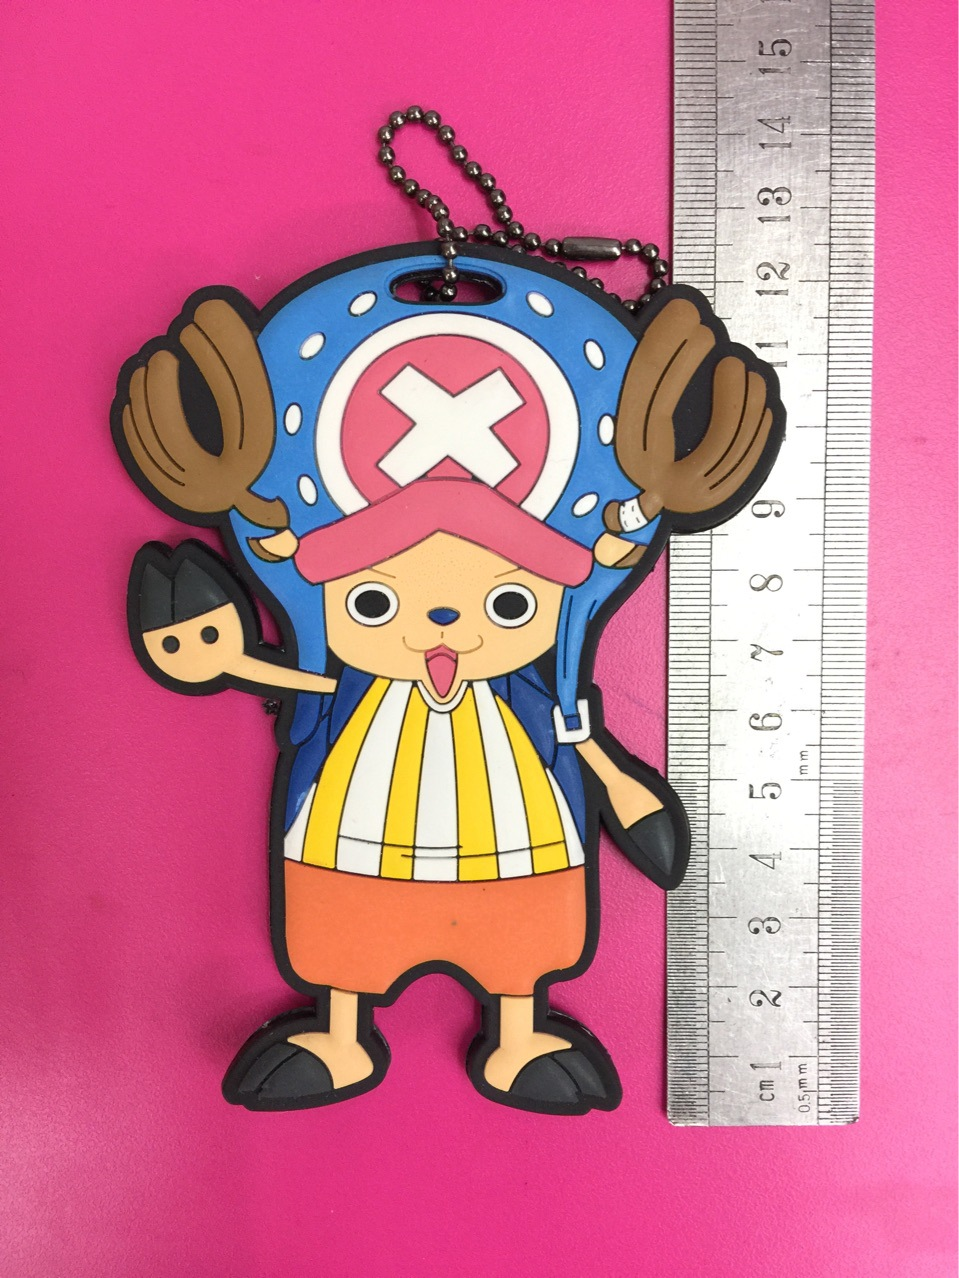 G613 One Piece Chopper large size Original Japanese anime figure rubber Silicone Luggage tag keychain strap